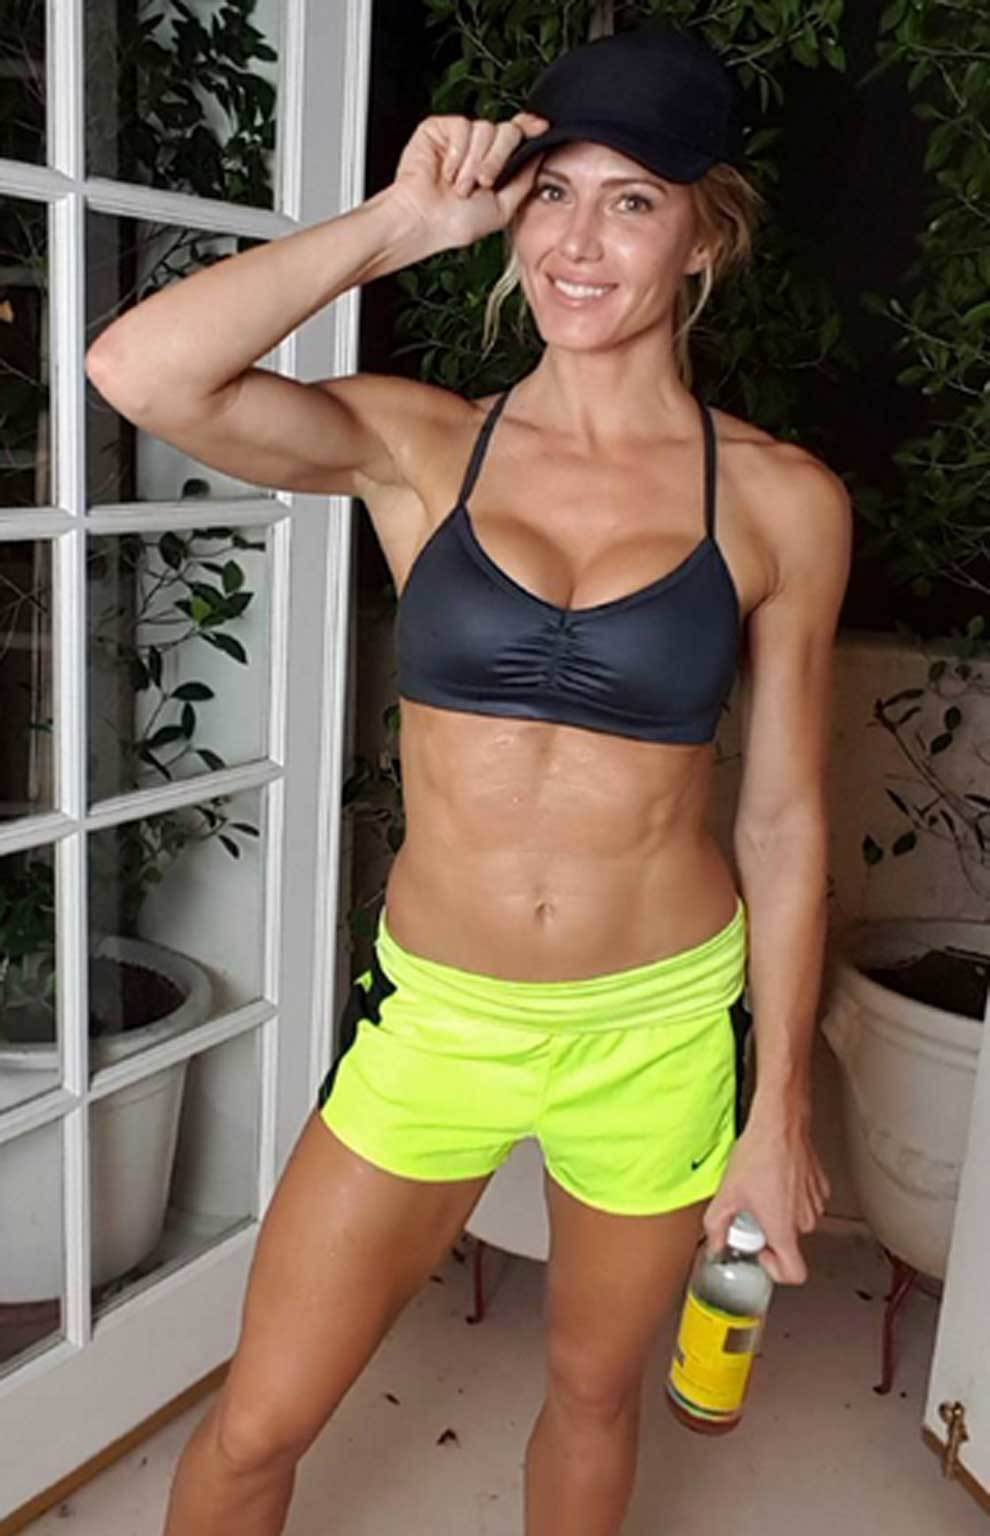 Wwe Torrie Wilson Stripping For Playboy Sent My Popularity Soaring